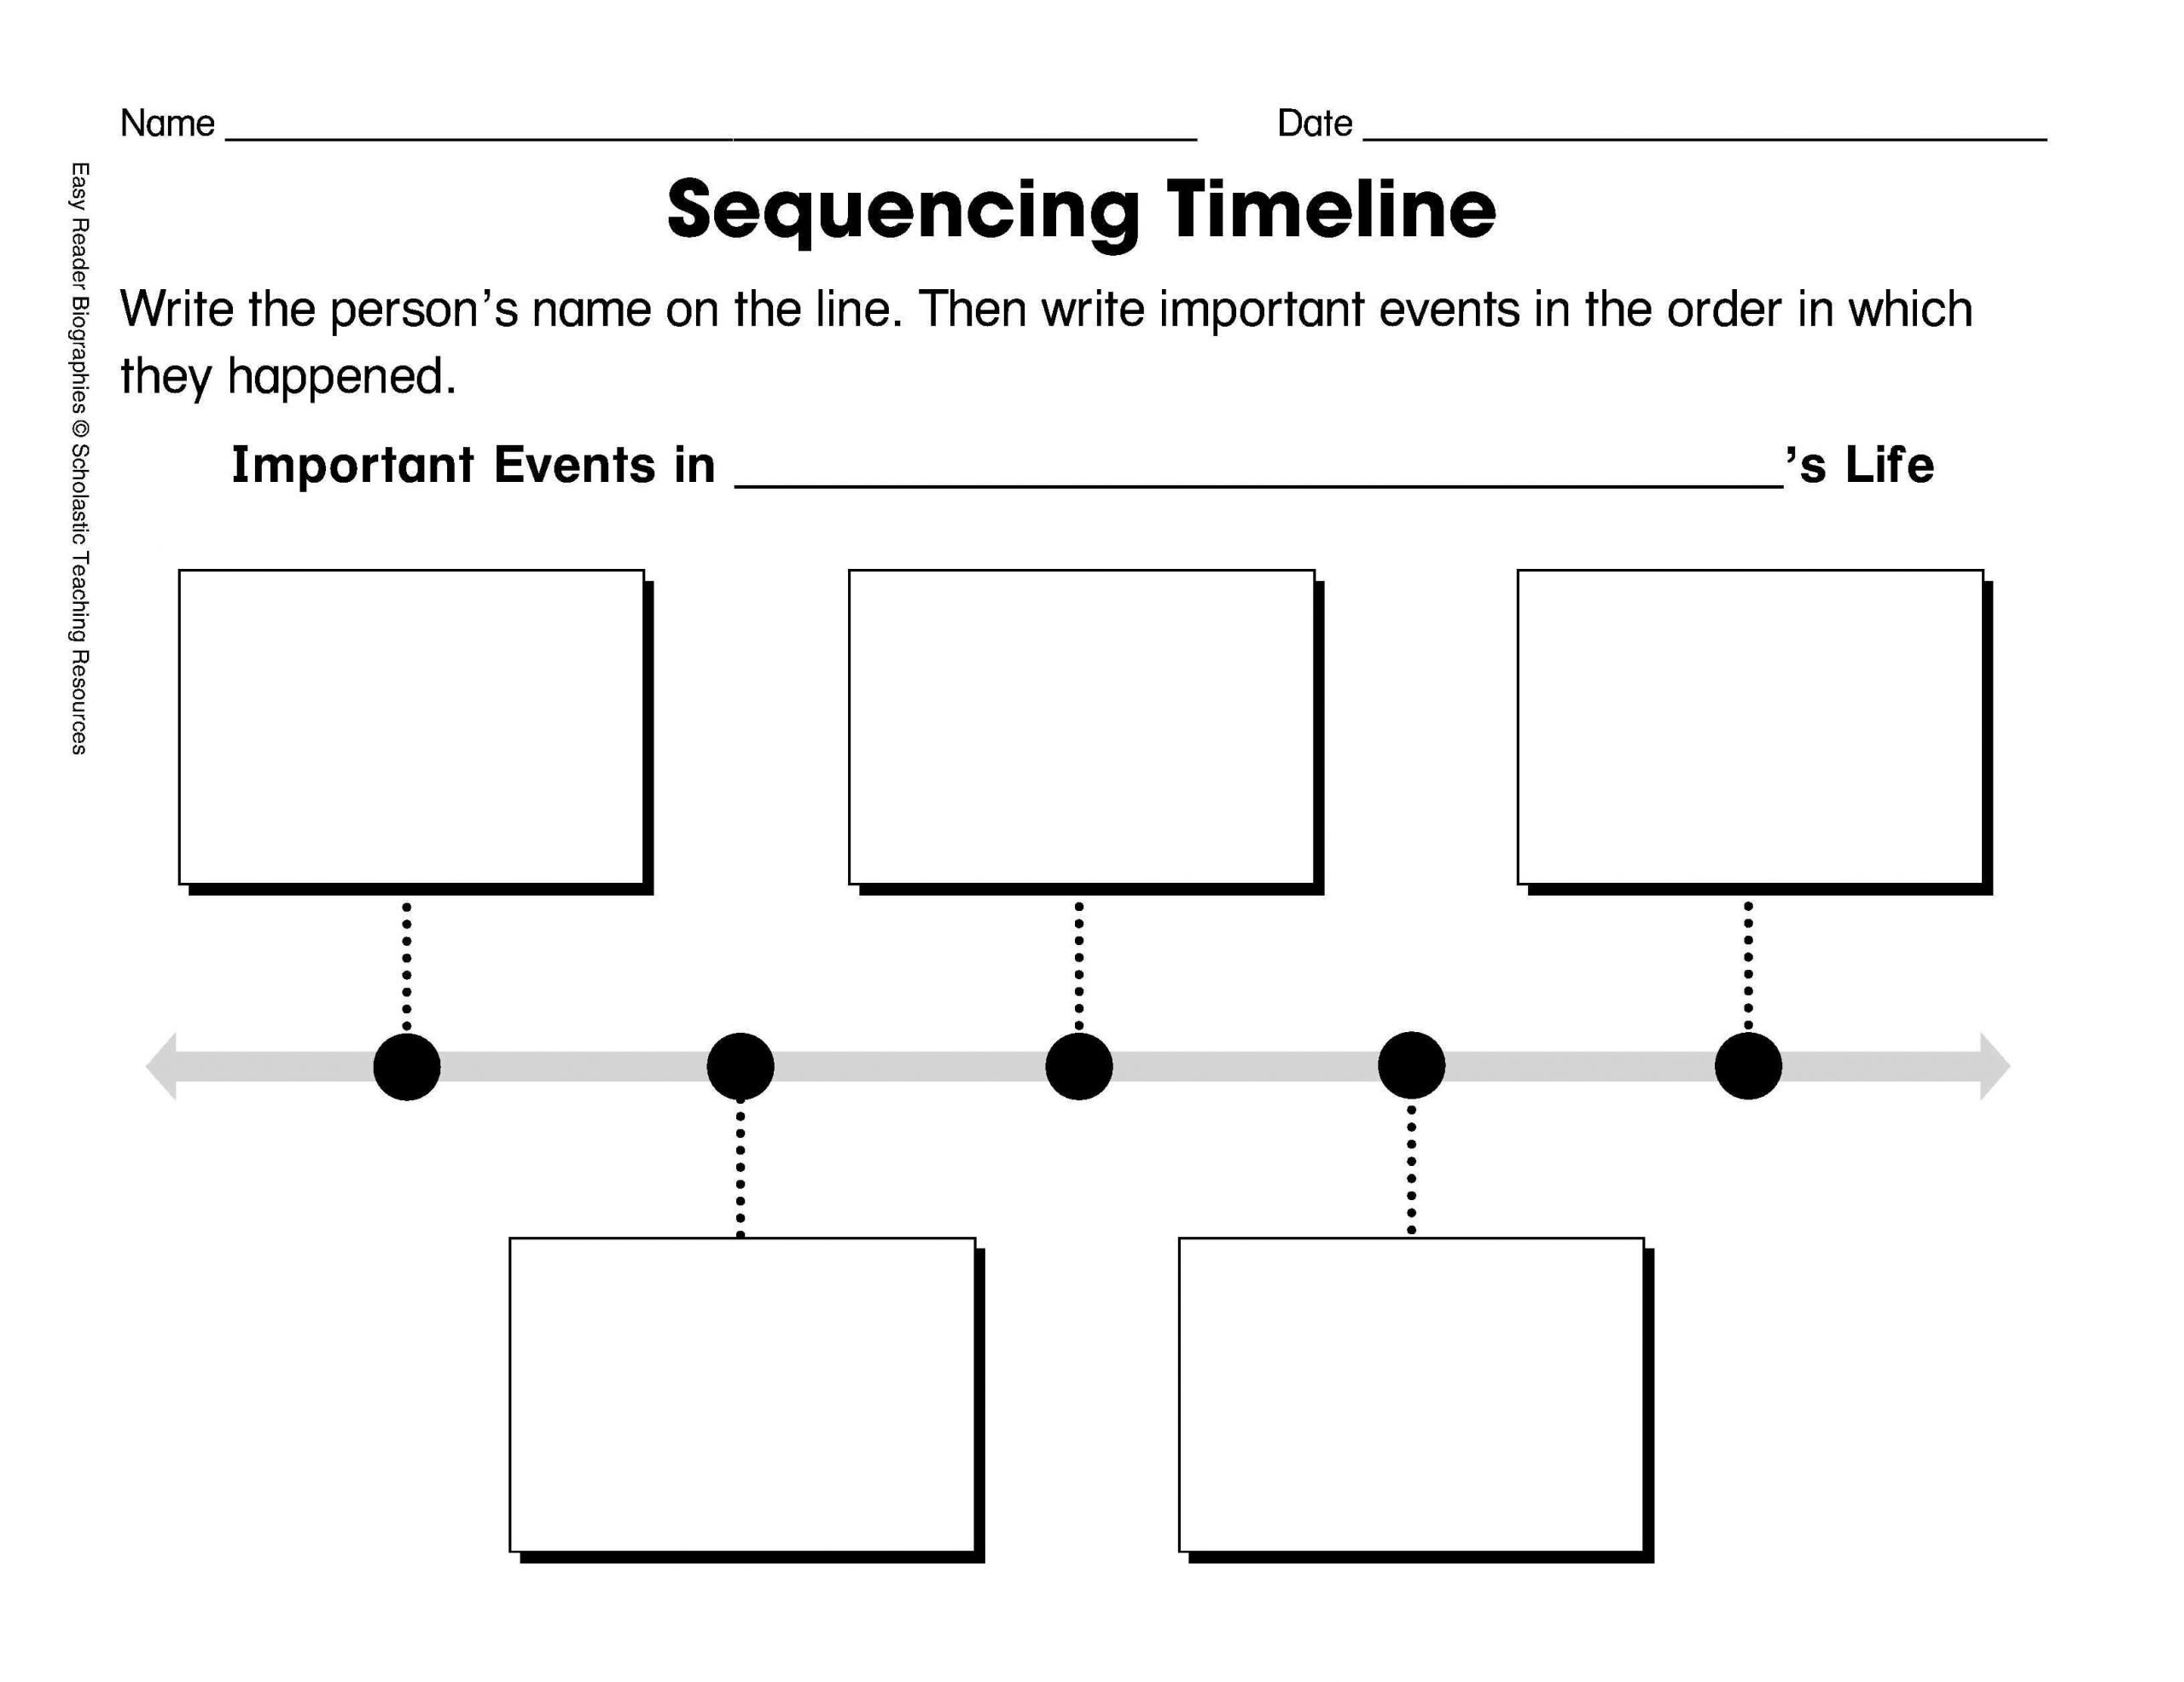 Sequence Of events Worksheets Pdf Sequencing Timeline Template ordering Biographical events